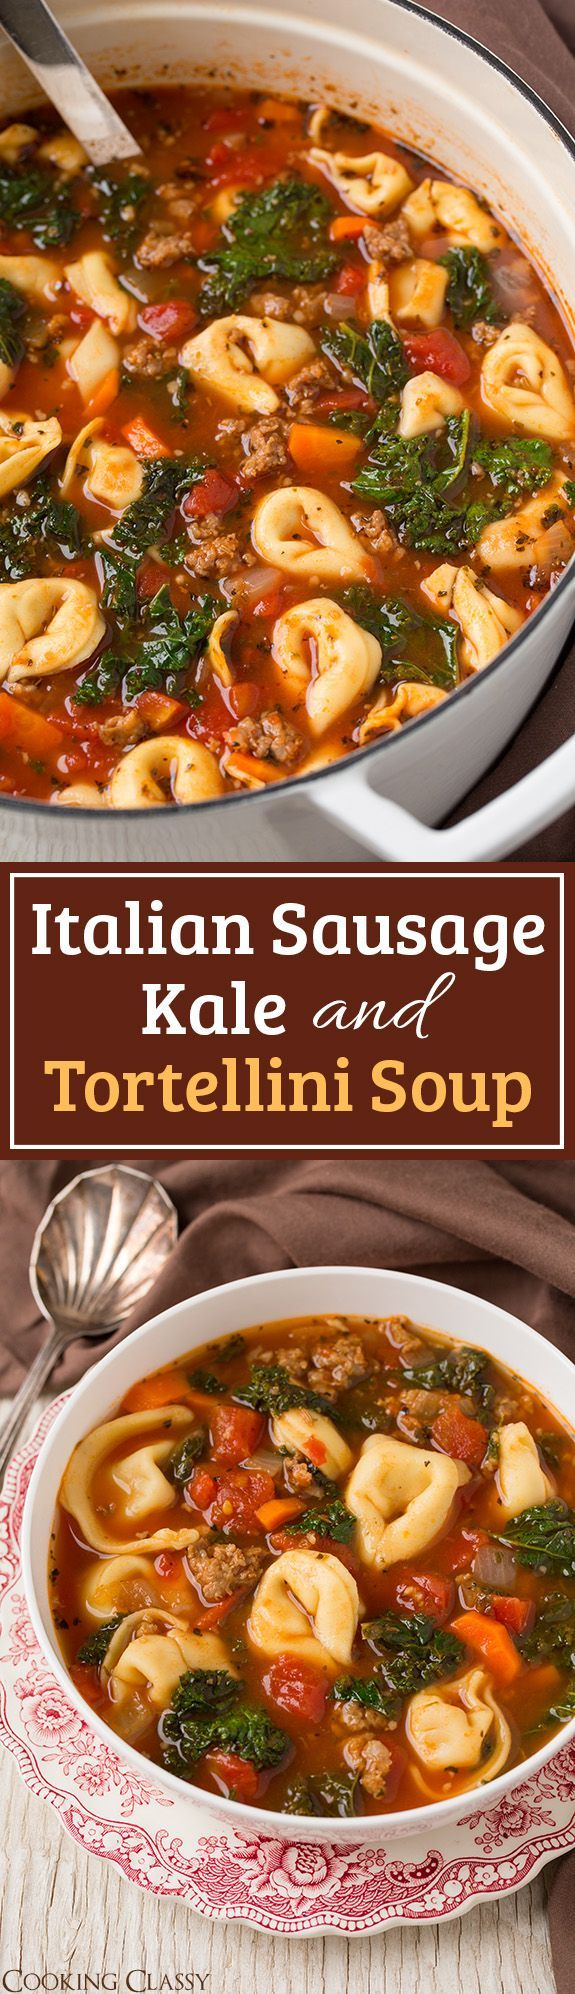 Italian Sausage, Kale and Tortellini Soup - easy, hearty and loved the ...